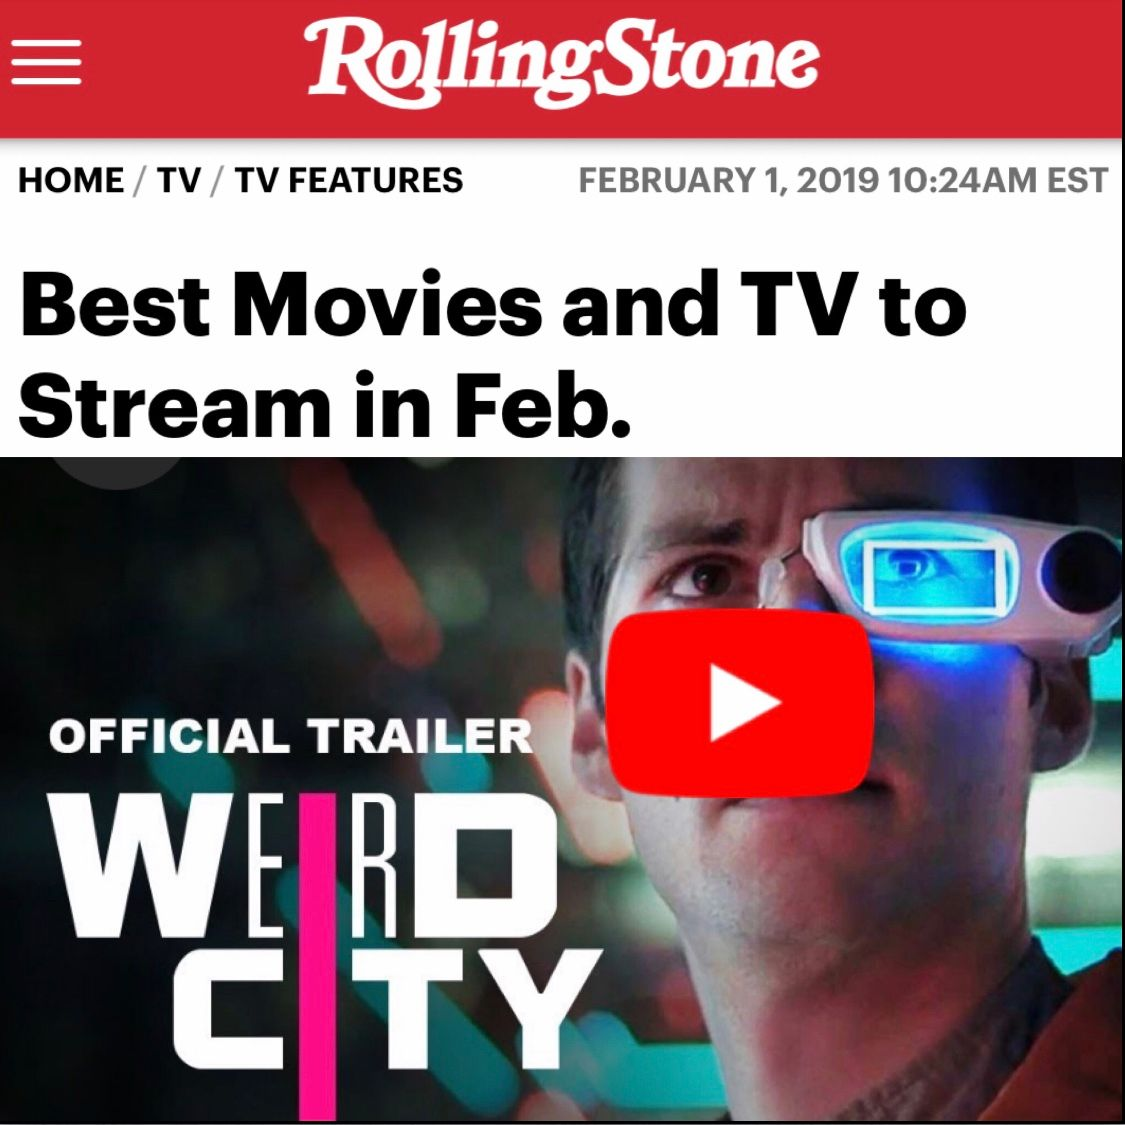 WEIRD CITY ROLLING STONE